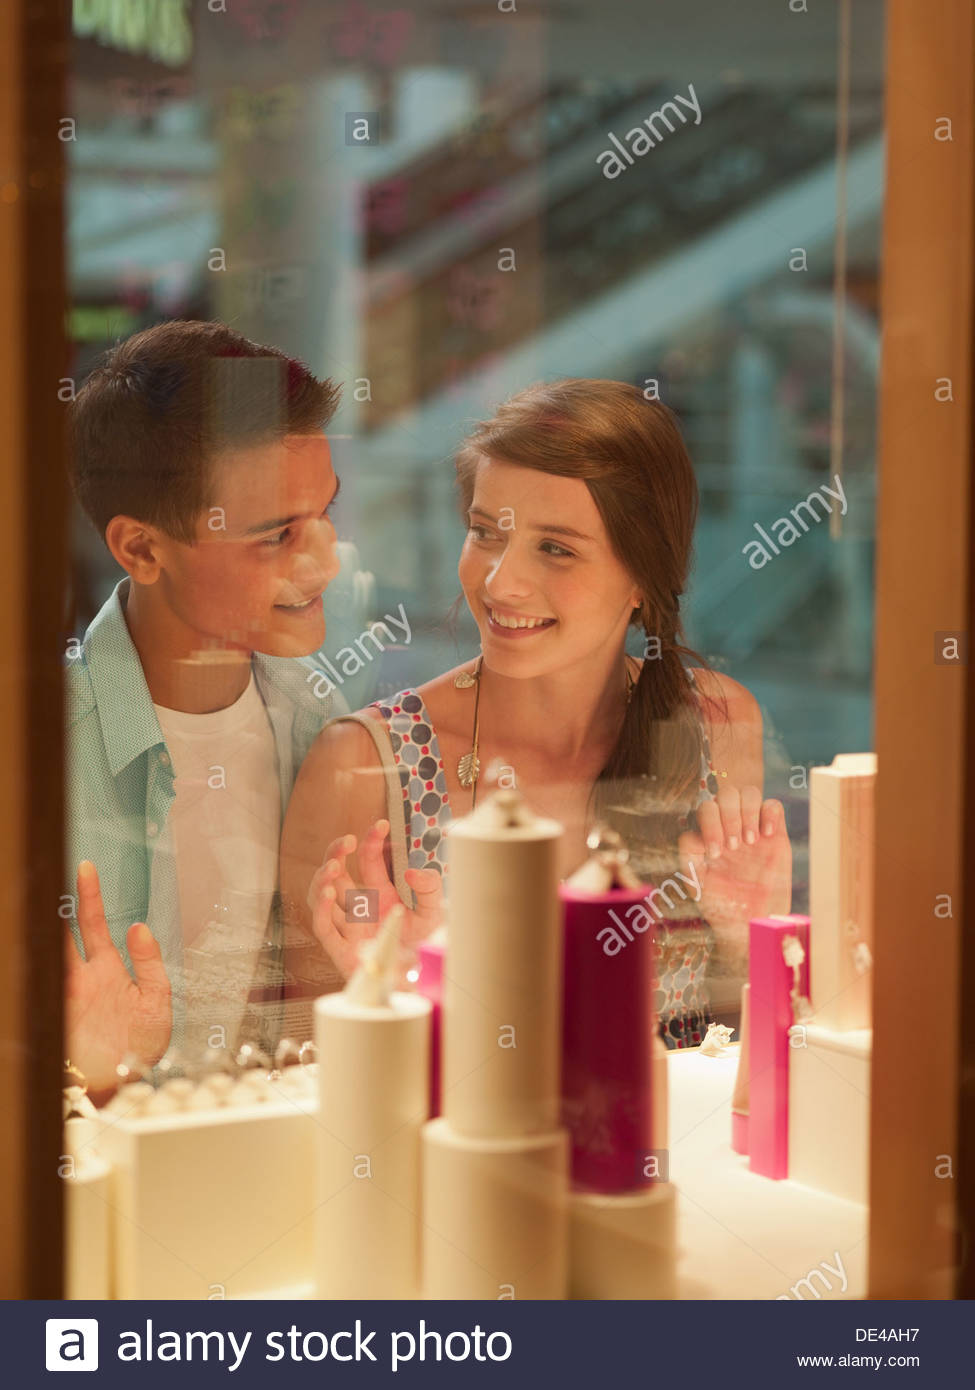 Gay couple Window Shopping Photo Stock